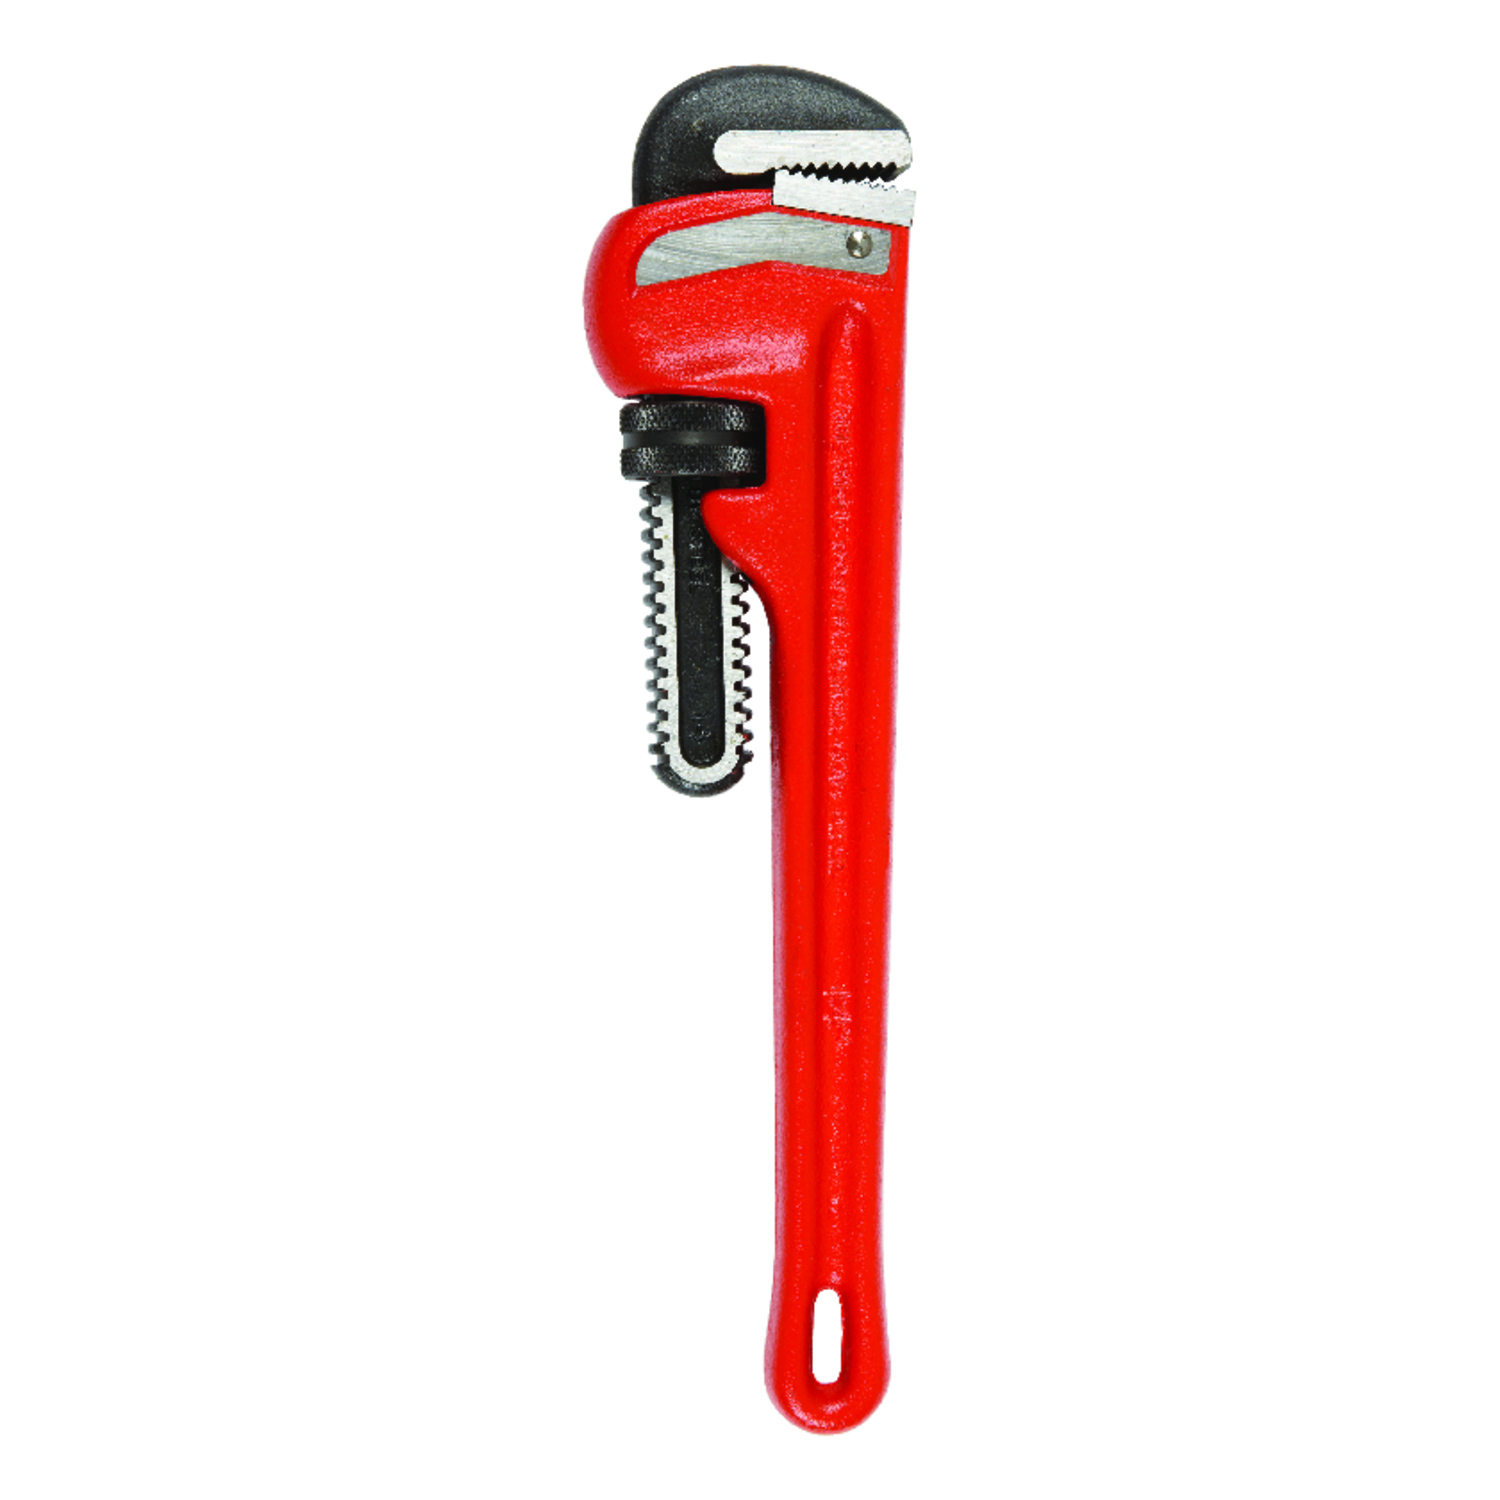 Ridgid Pipe Wrench 14 in. Cast Iron 1 pc.